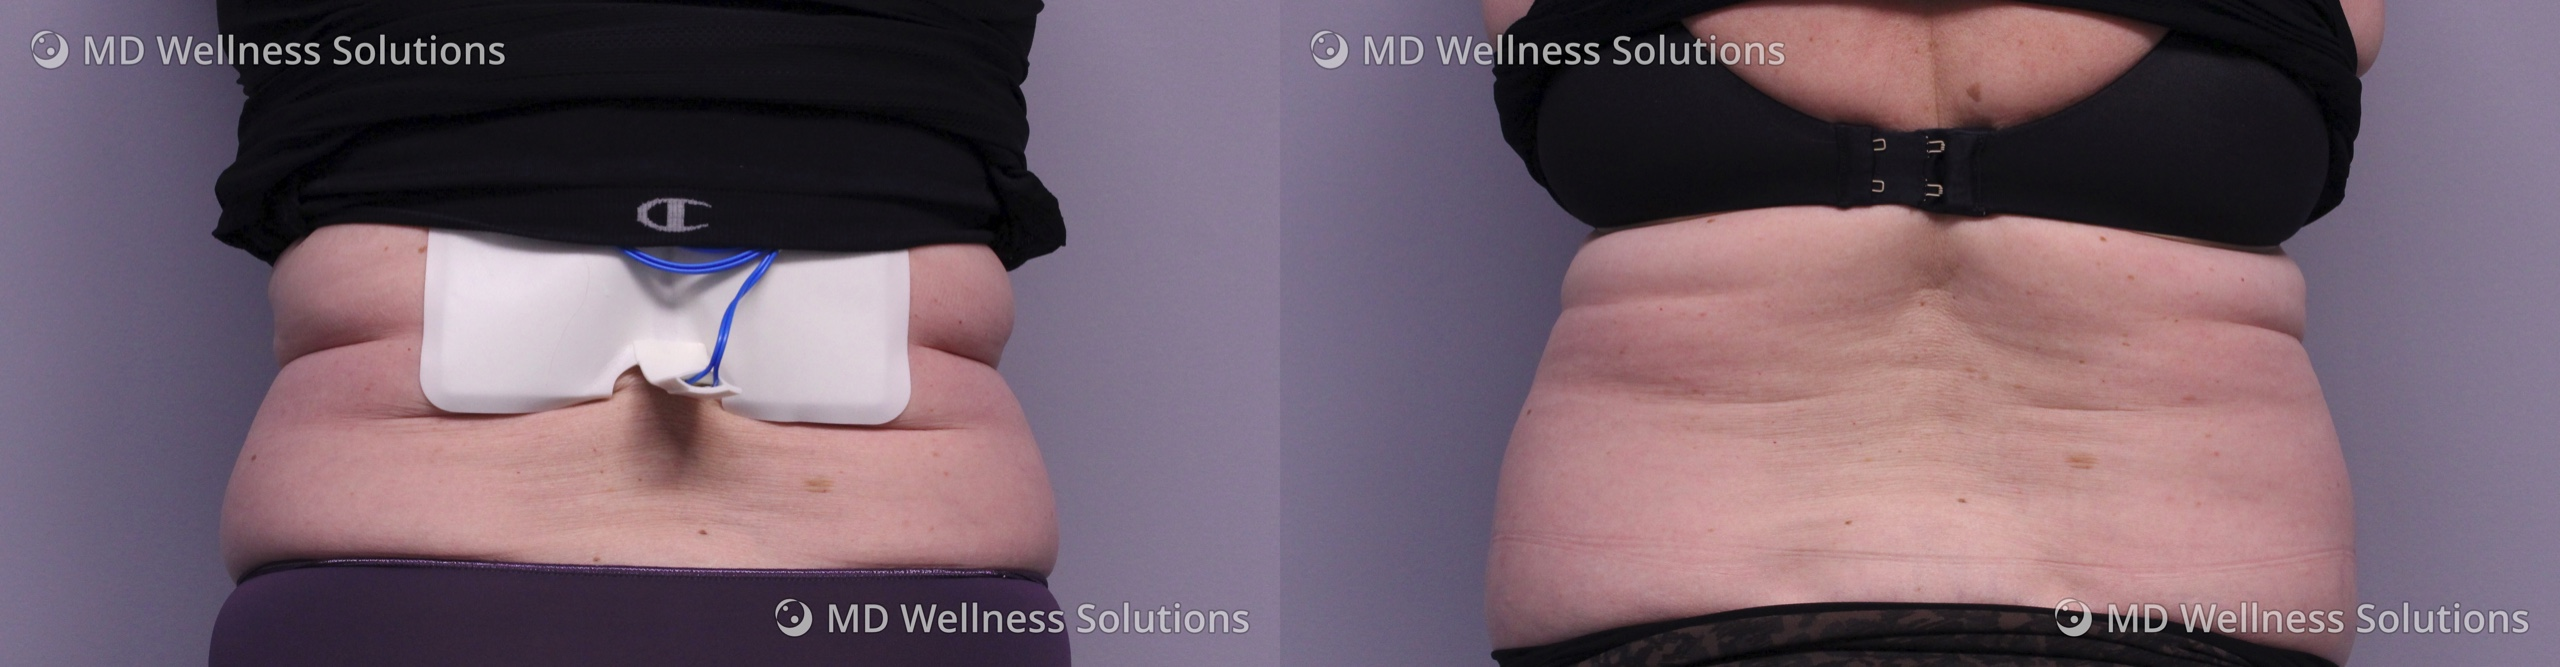 55-64 year old woman before and after FlexSure body contouring treatment